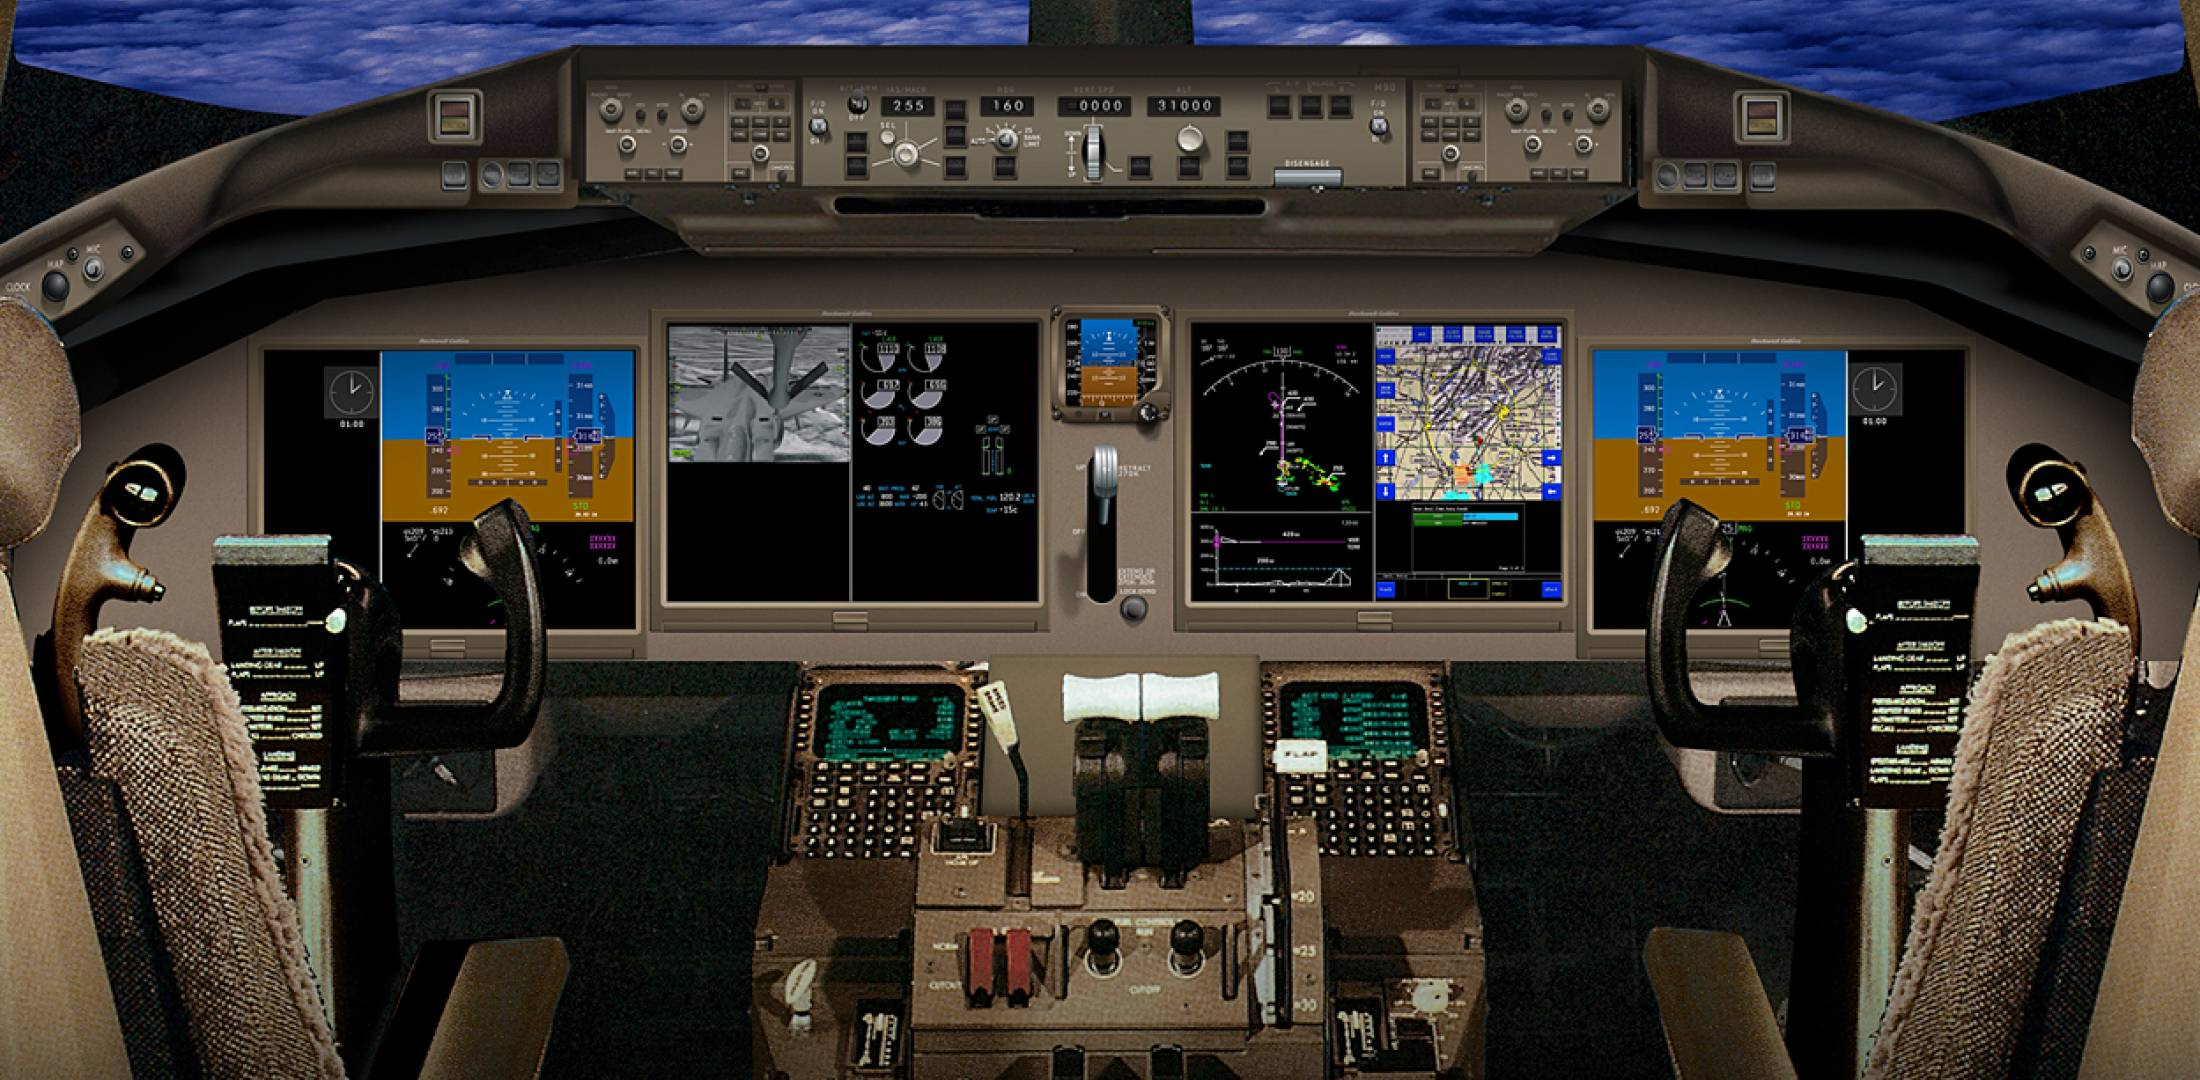 The flight deck displays of the Boeing KC-46A aerial refueling tanker are mod